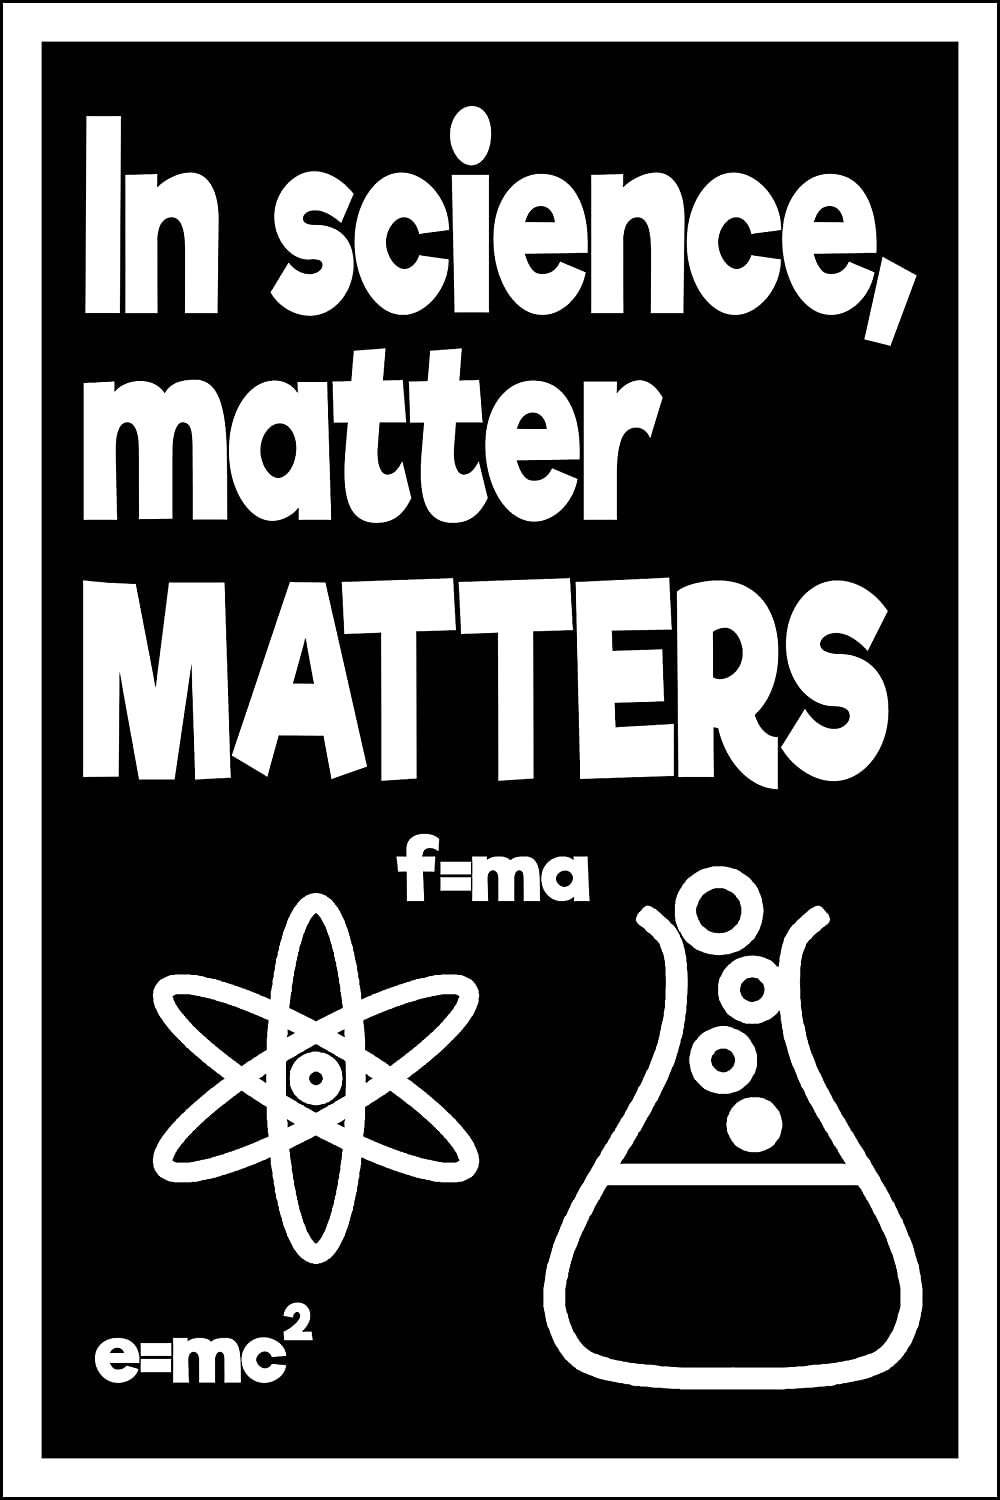 Science Teacher Poster - in Science, Matter Matters - 12x18 inch Poster for Teachers of All Levels - Elementary, Middle, High School, and College, Classroom Wall Decor